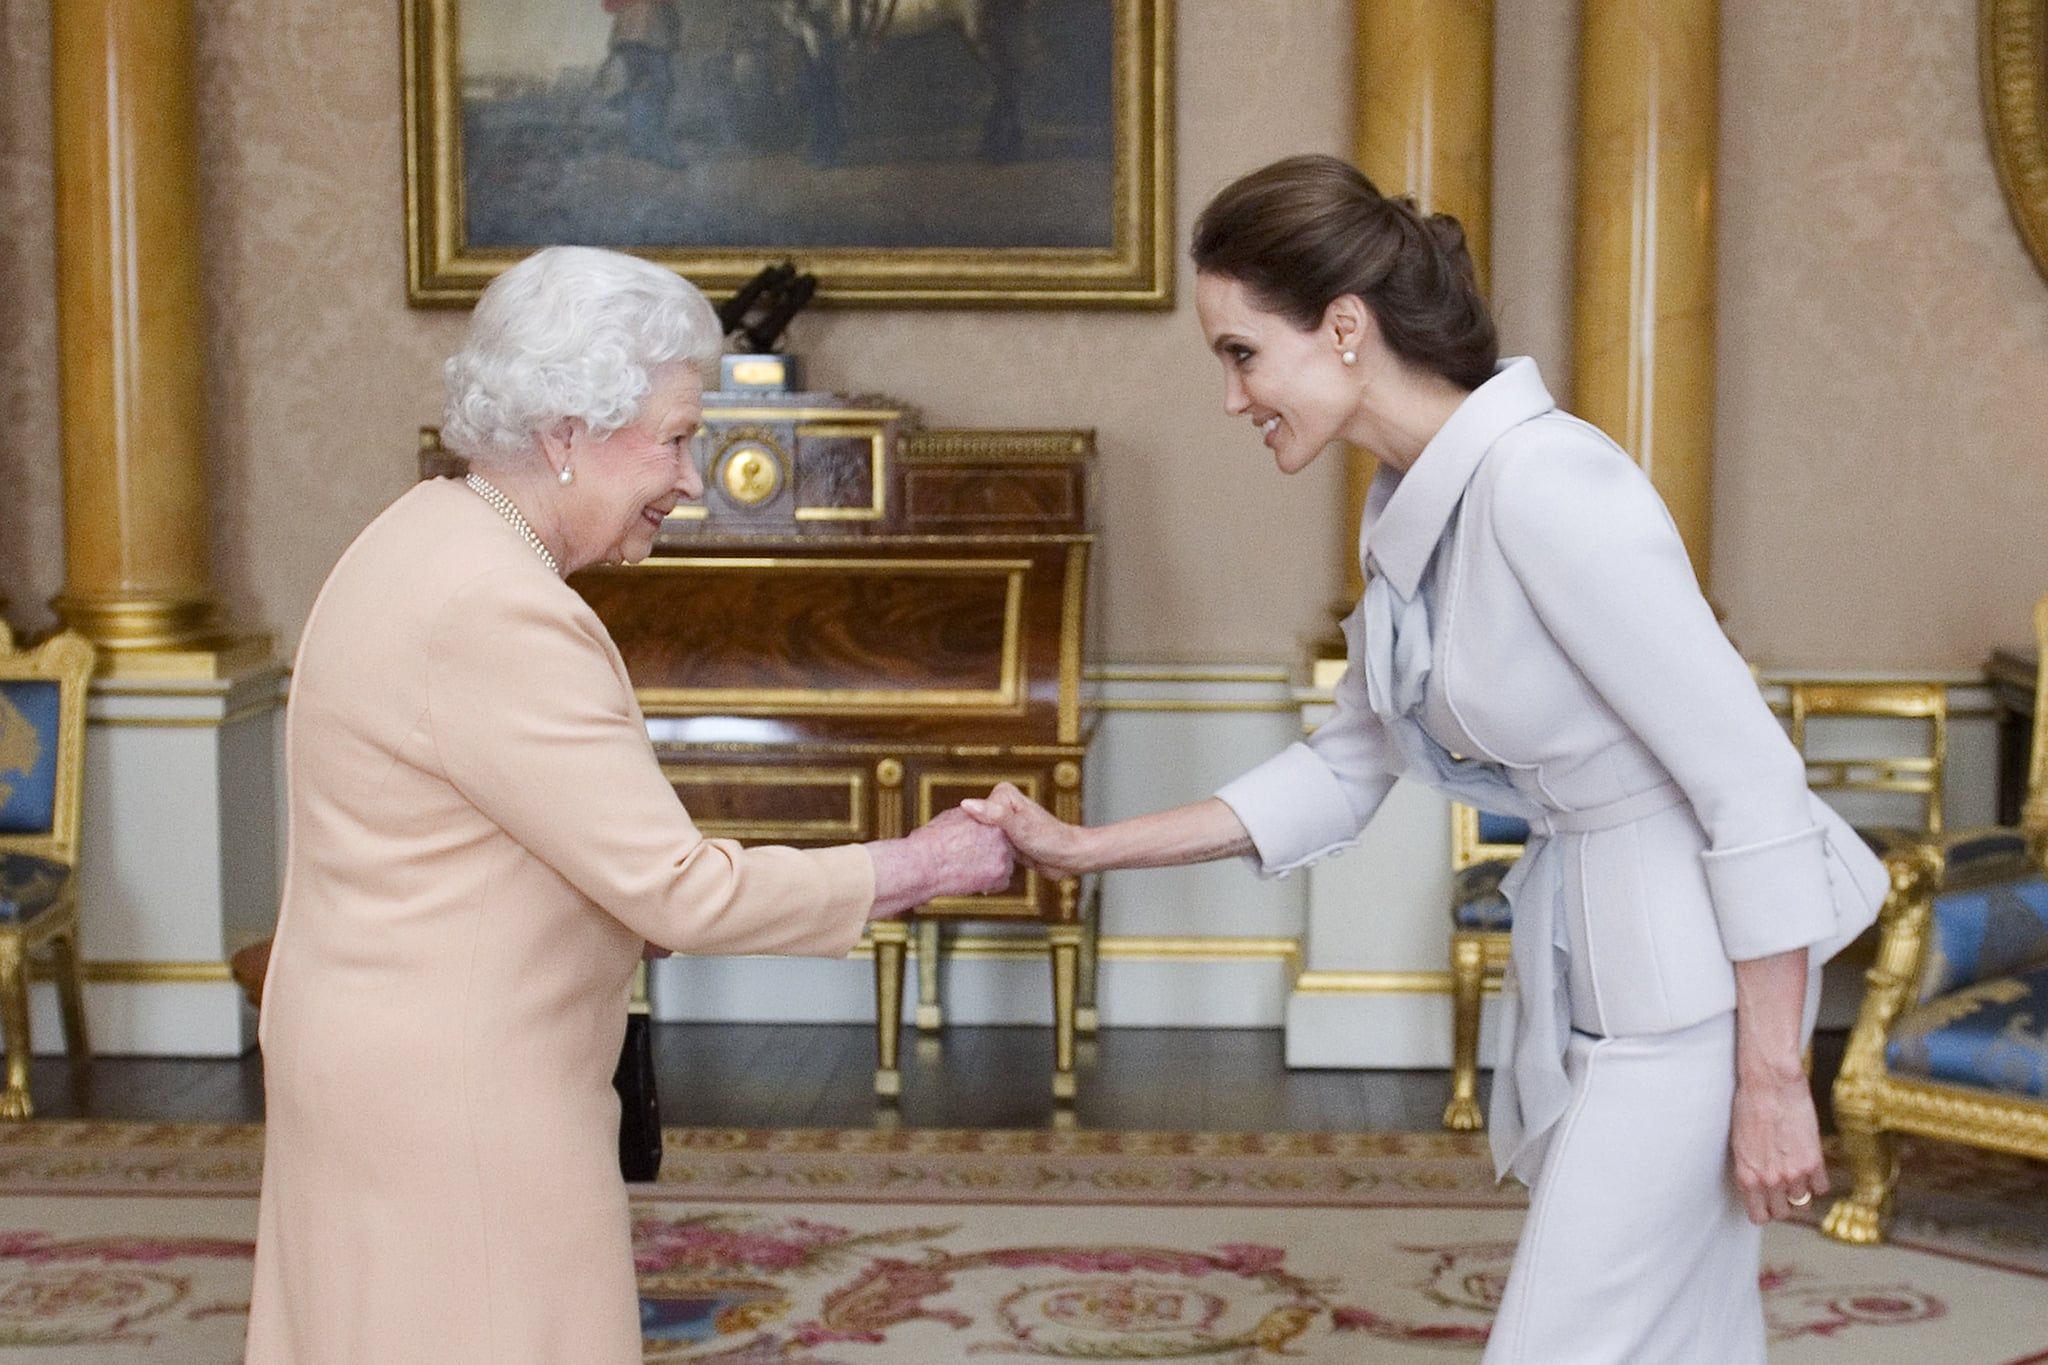 US actress Angelina Jolie (R) is presented with the Insignia of an honourary Dame Grand Cross of the Most Distinguished Order of St Michael and St George by Britain's Queen Elizabeth II in the 1844 Room at Buckingham Palace in central London, on October 10, 2014. Angelina Jolie was awarded an honourary damehood (DCMG) for services to UK foreign policy and the campaign to end war zone sexual violence. AFP PHOTO/Anthony Devlin/POOL        (Photo credit should read Anthony Devlin/AFP/Getty Images)